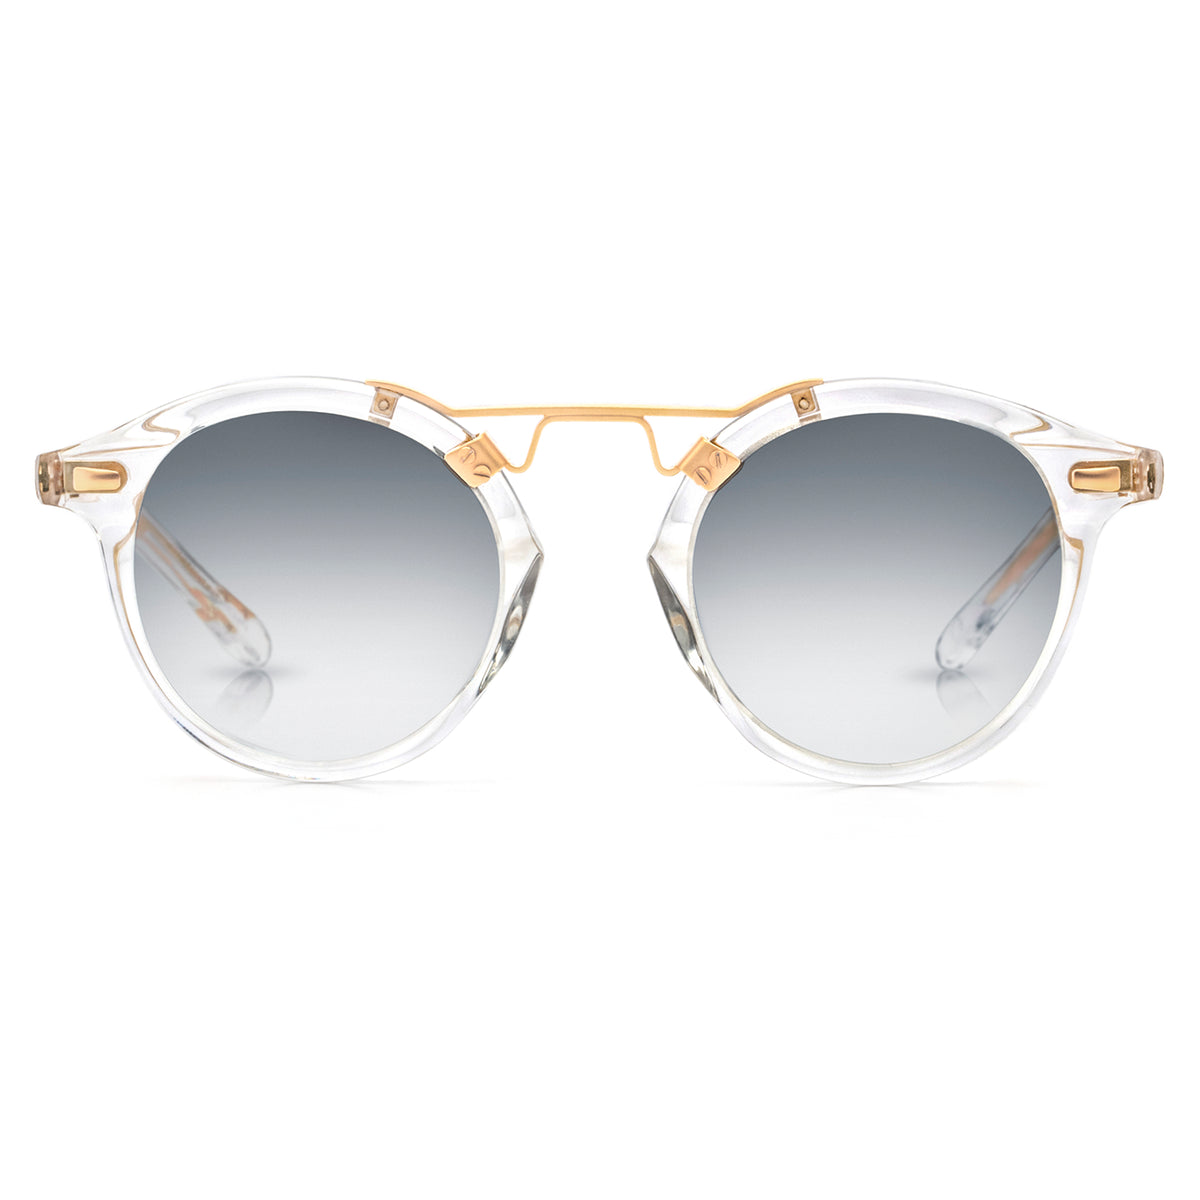 ST. LOUIS MIRRORED | Crystal 24K handcrafted acetate Sunglasses